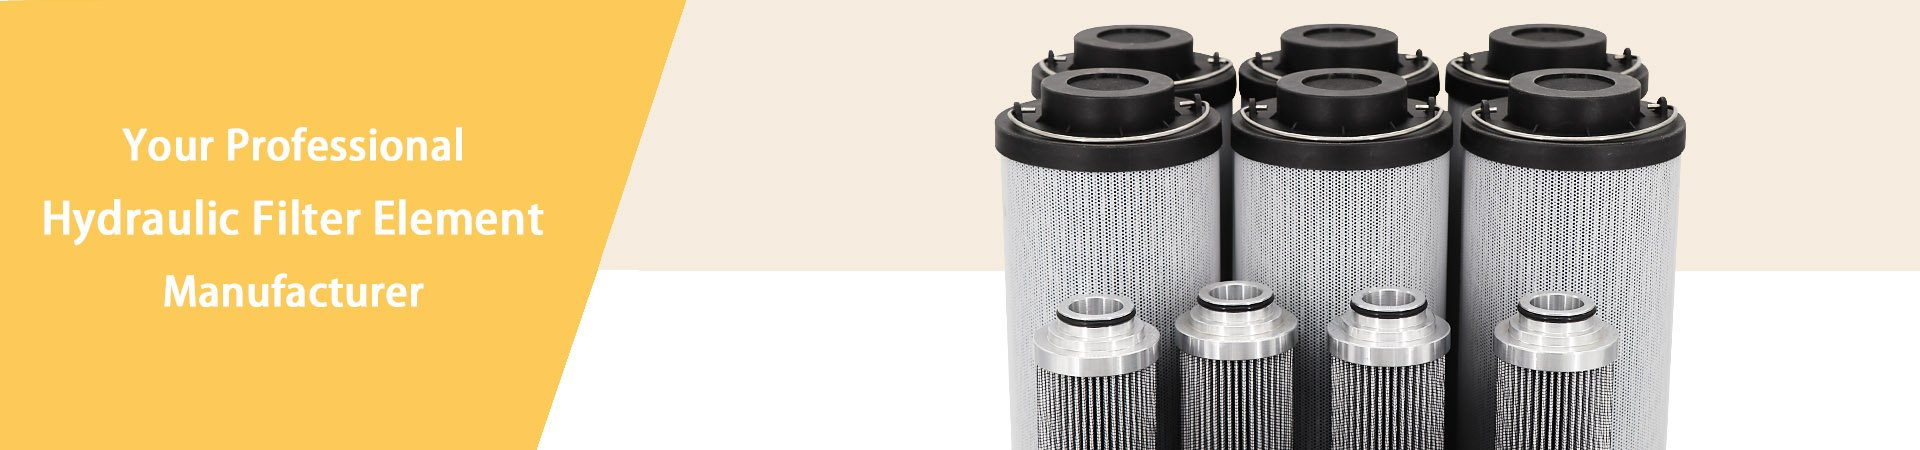 hydraulic filter element video banner